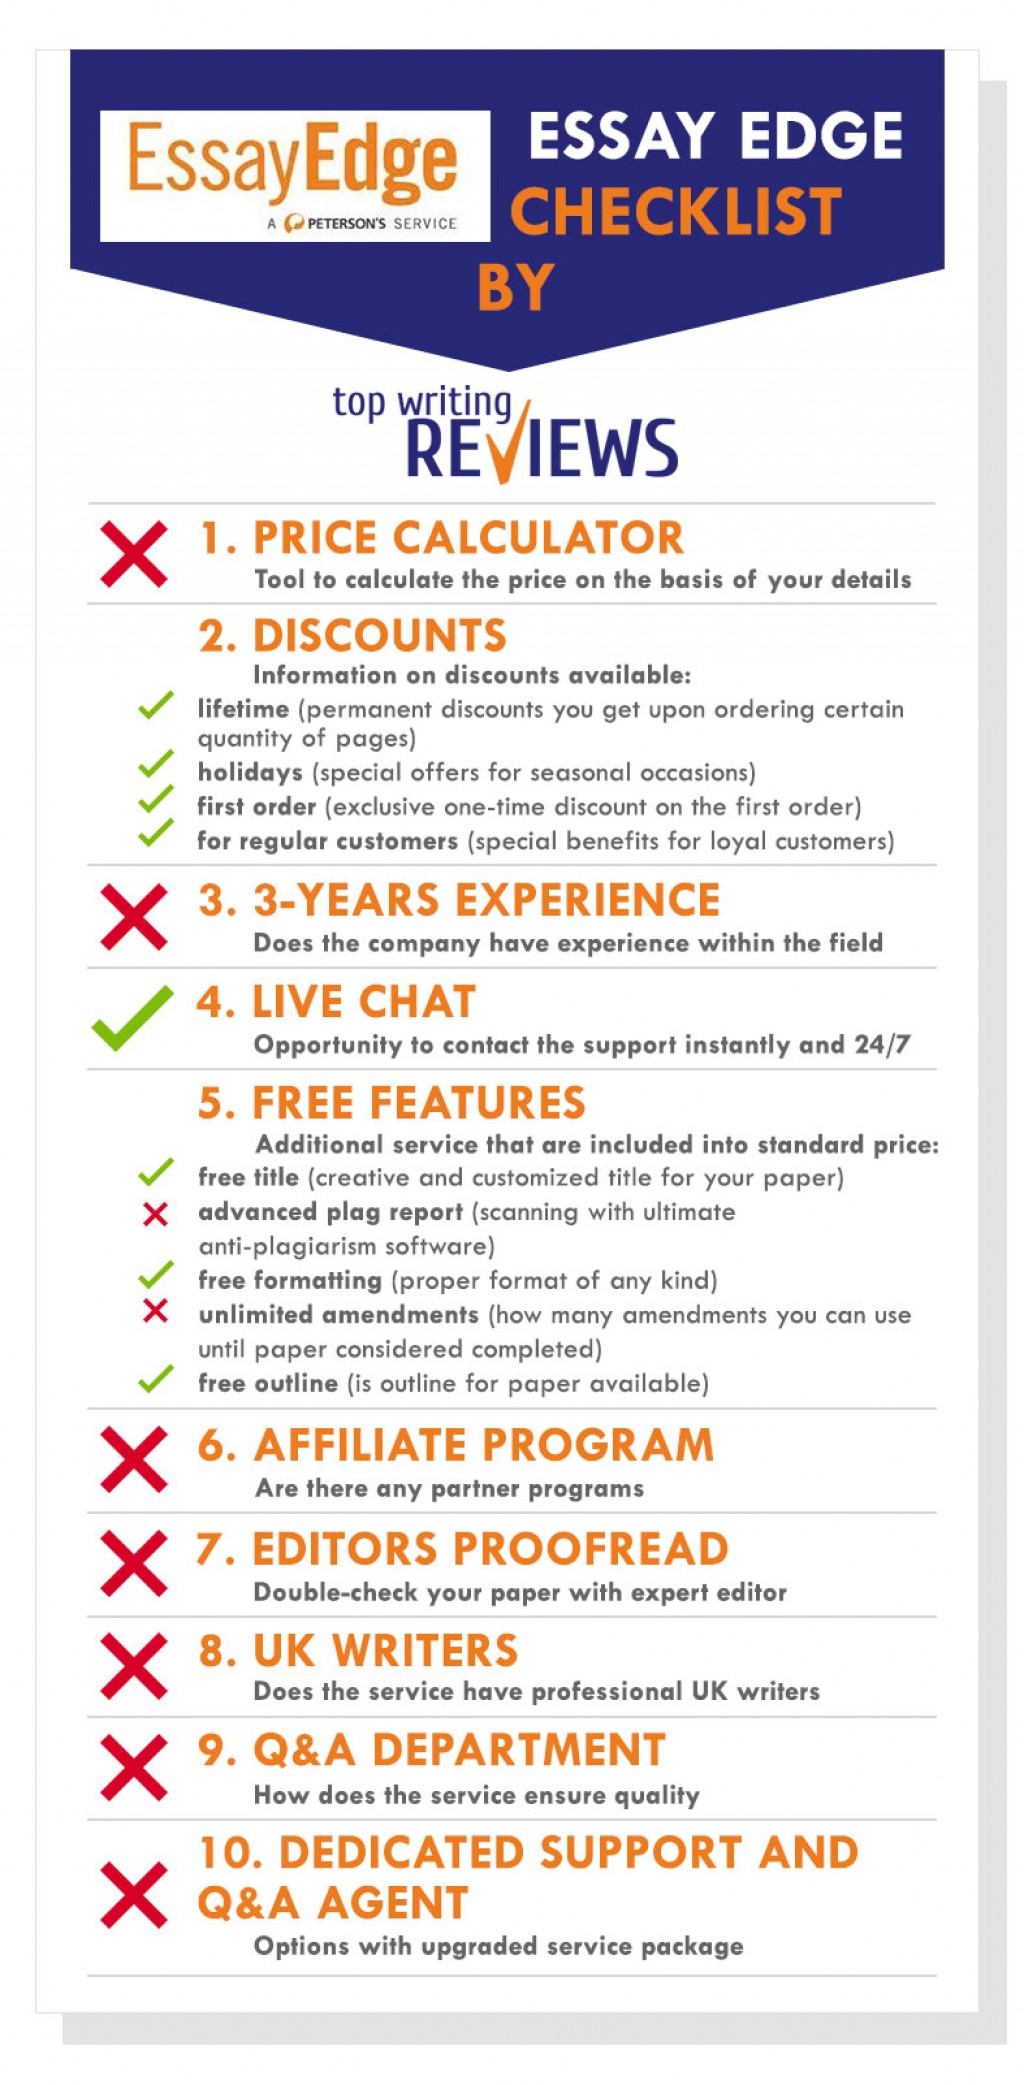 004 Checklist Review Of Essayedge By Topwritingreviews Essay Example Unusual Edge Personal Statement Pricing Large